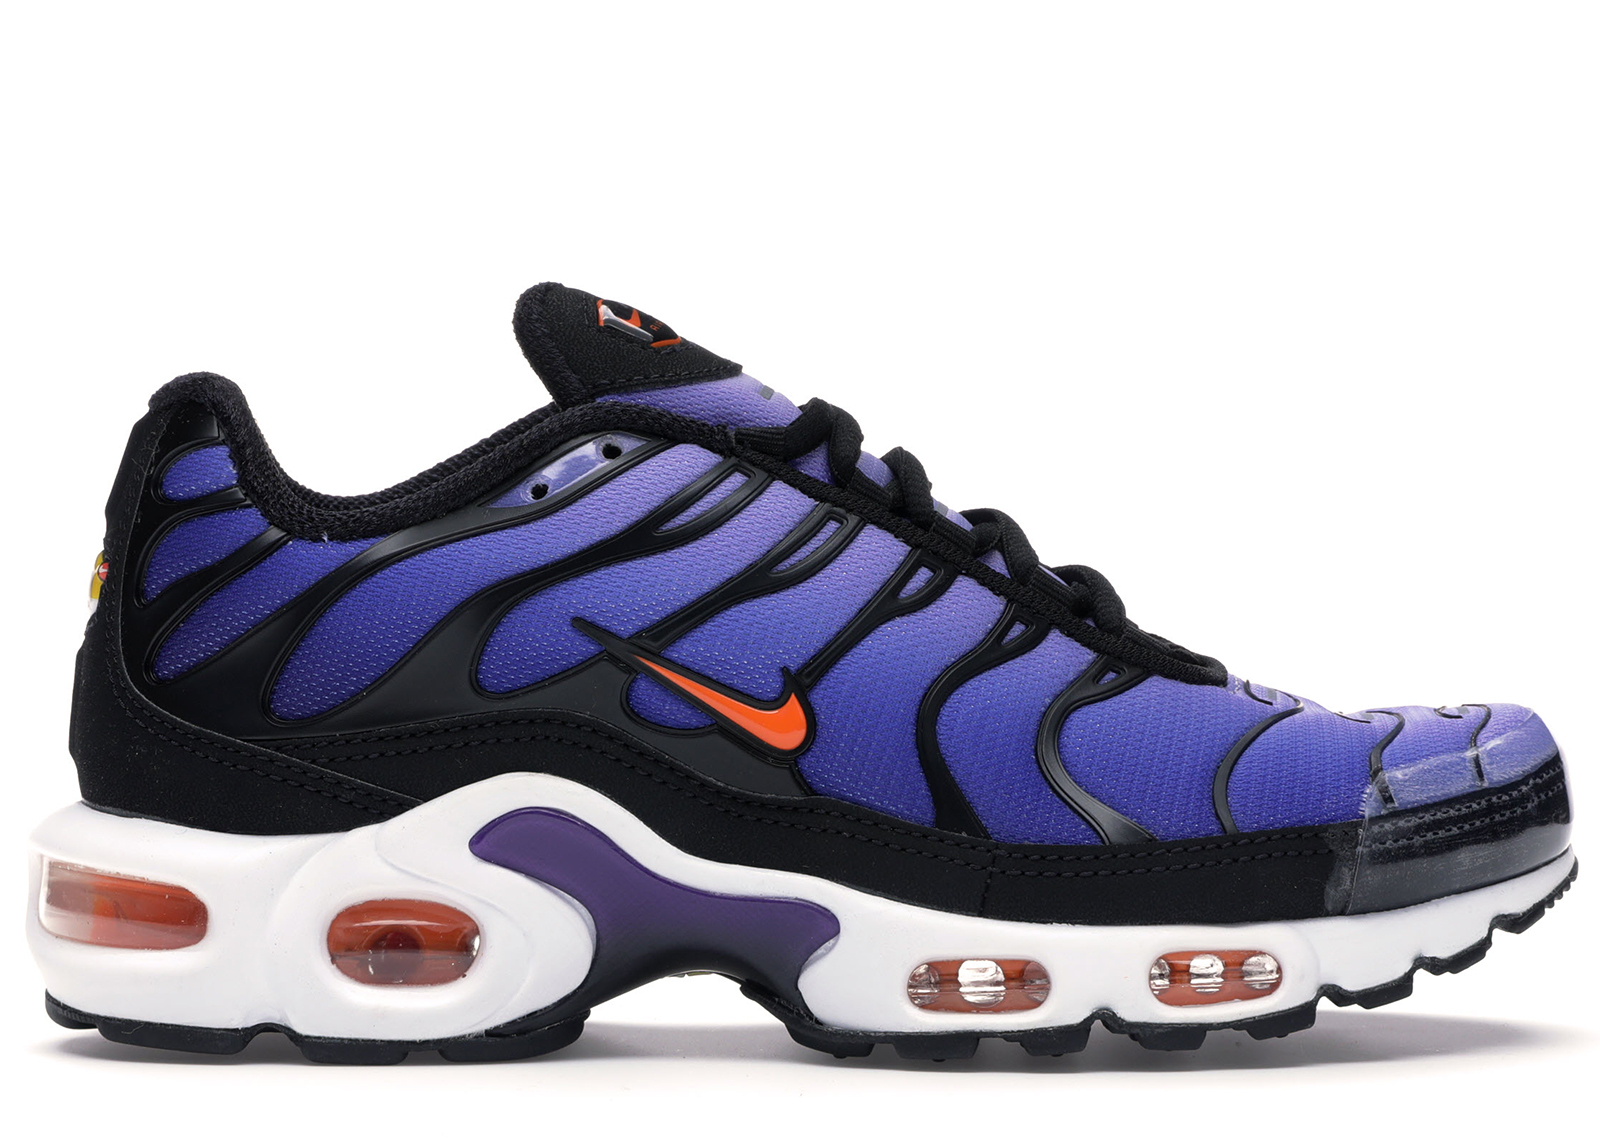 Air Max Plus OG Voltage Purple